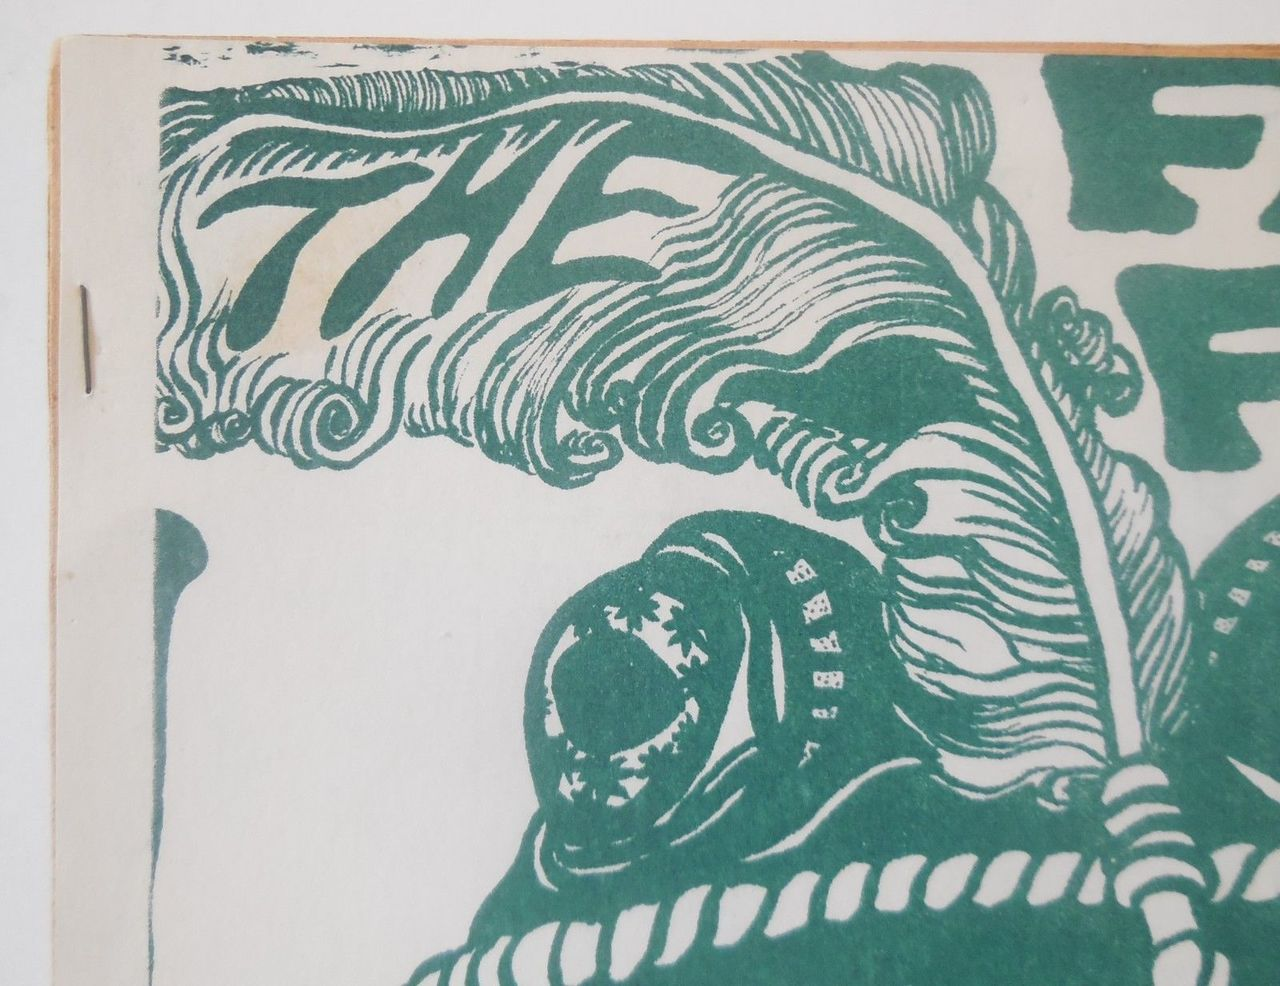 THE FAT FROG, by D.A. Levy and others - c.1967